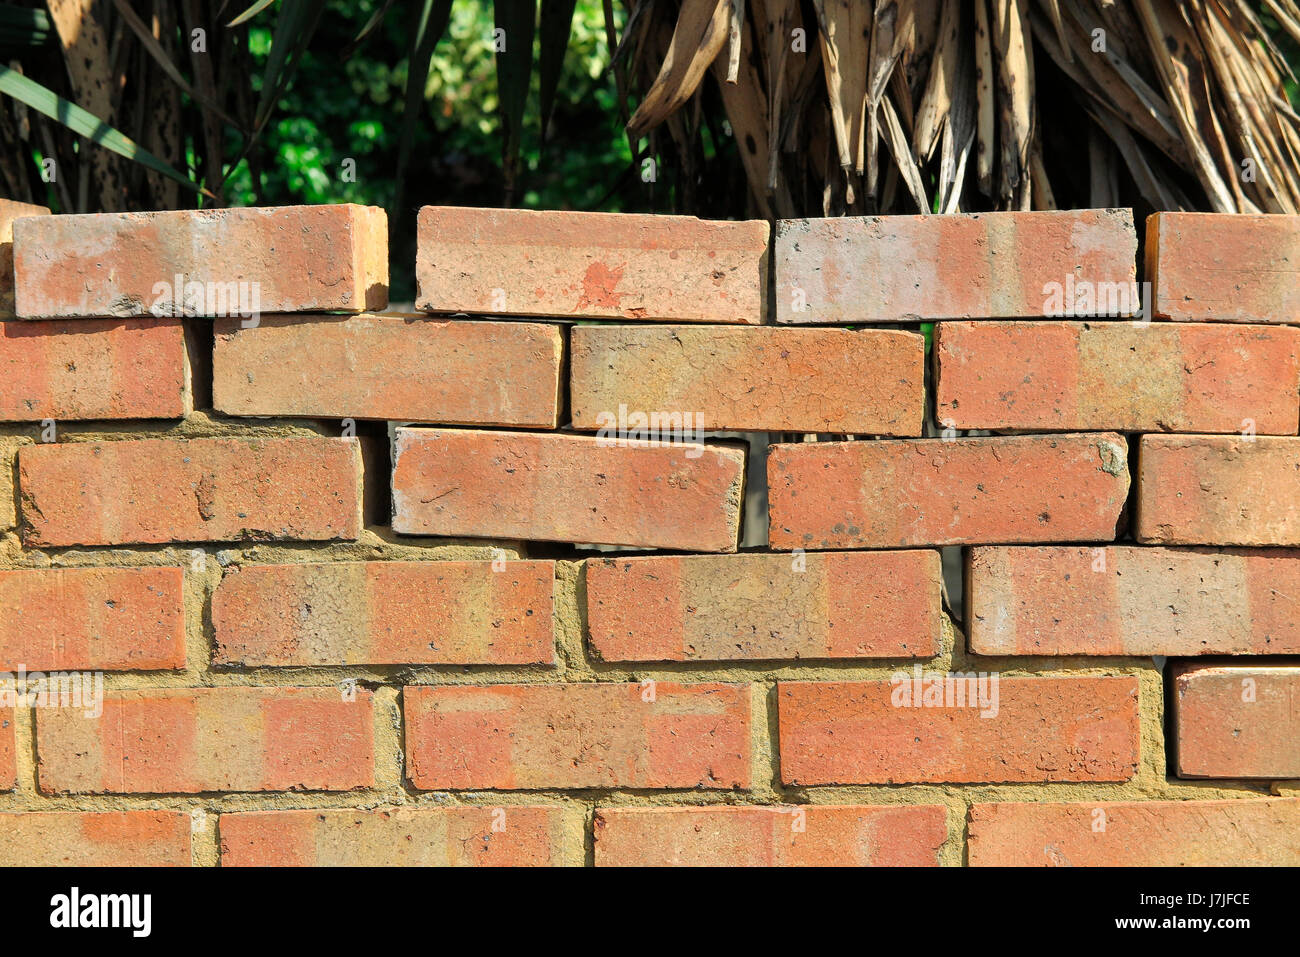 A brick wall made without cement / mortar between all the bricks. The wall may have been damaged or fallen over - Stock Image